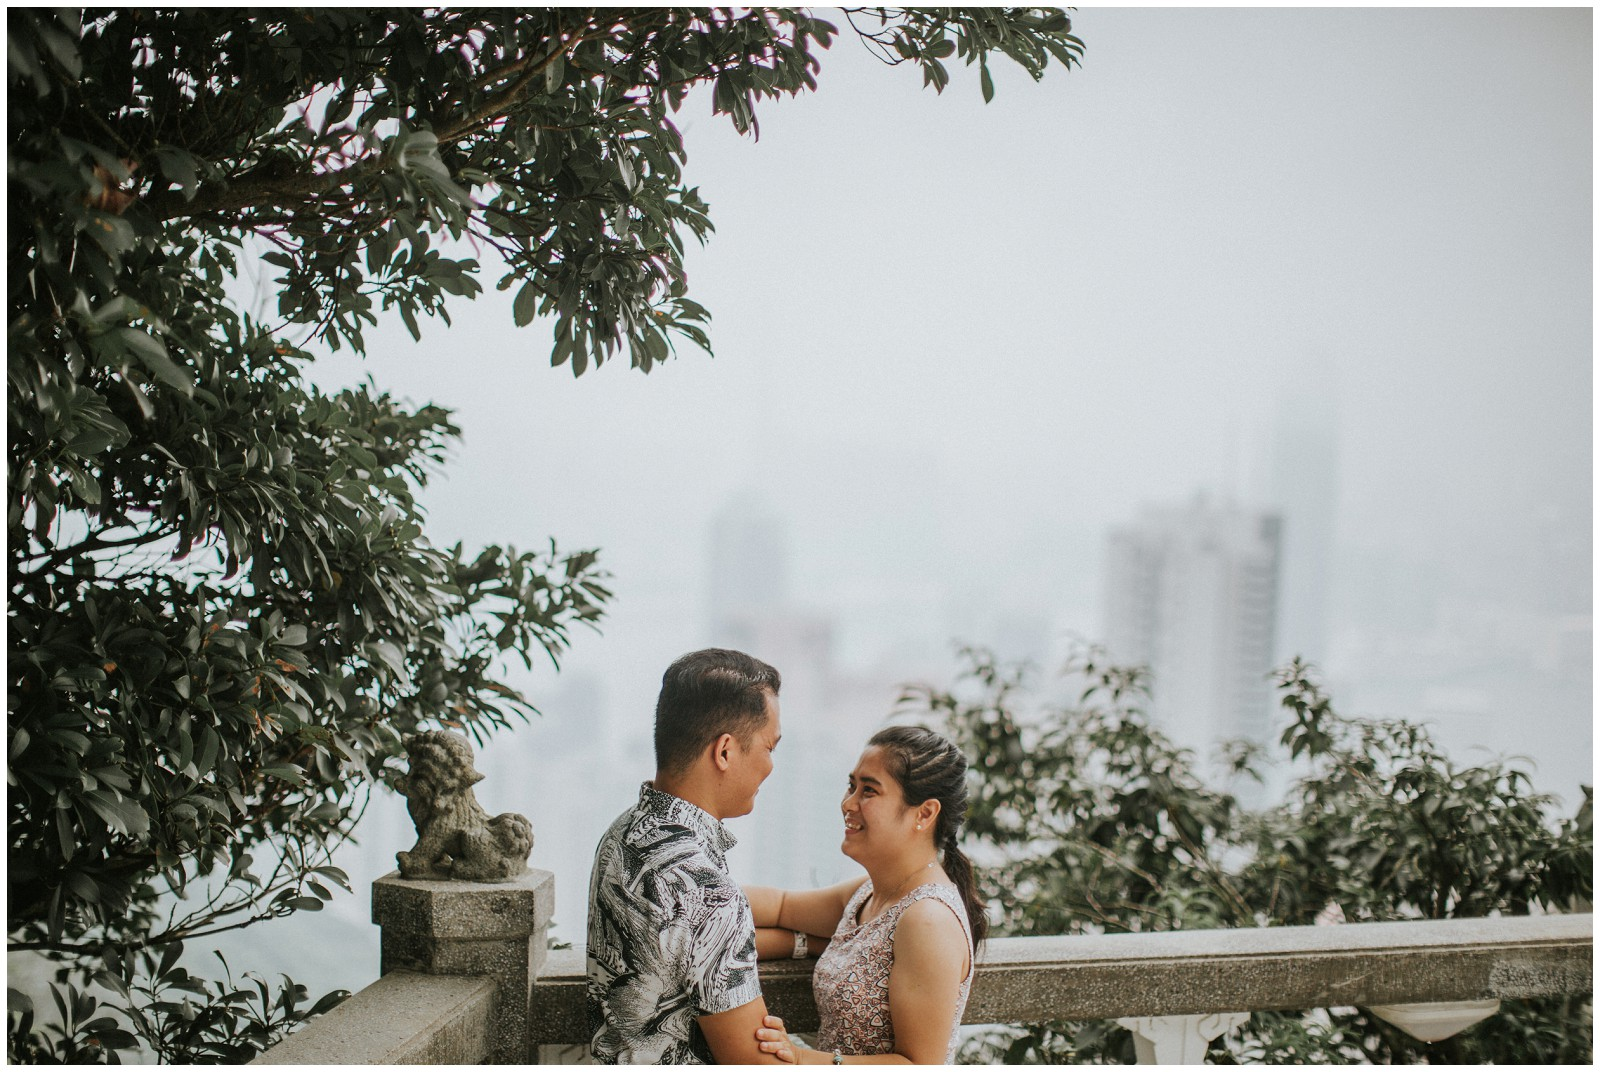 Wedding and Portrait Photography in Hong Kong.